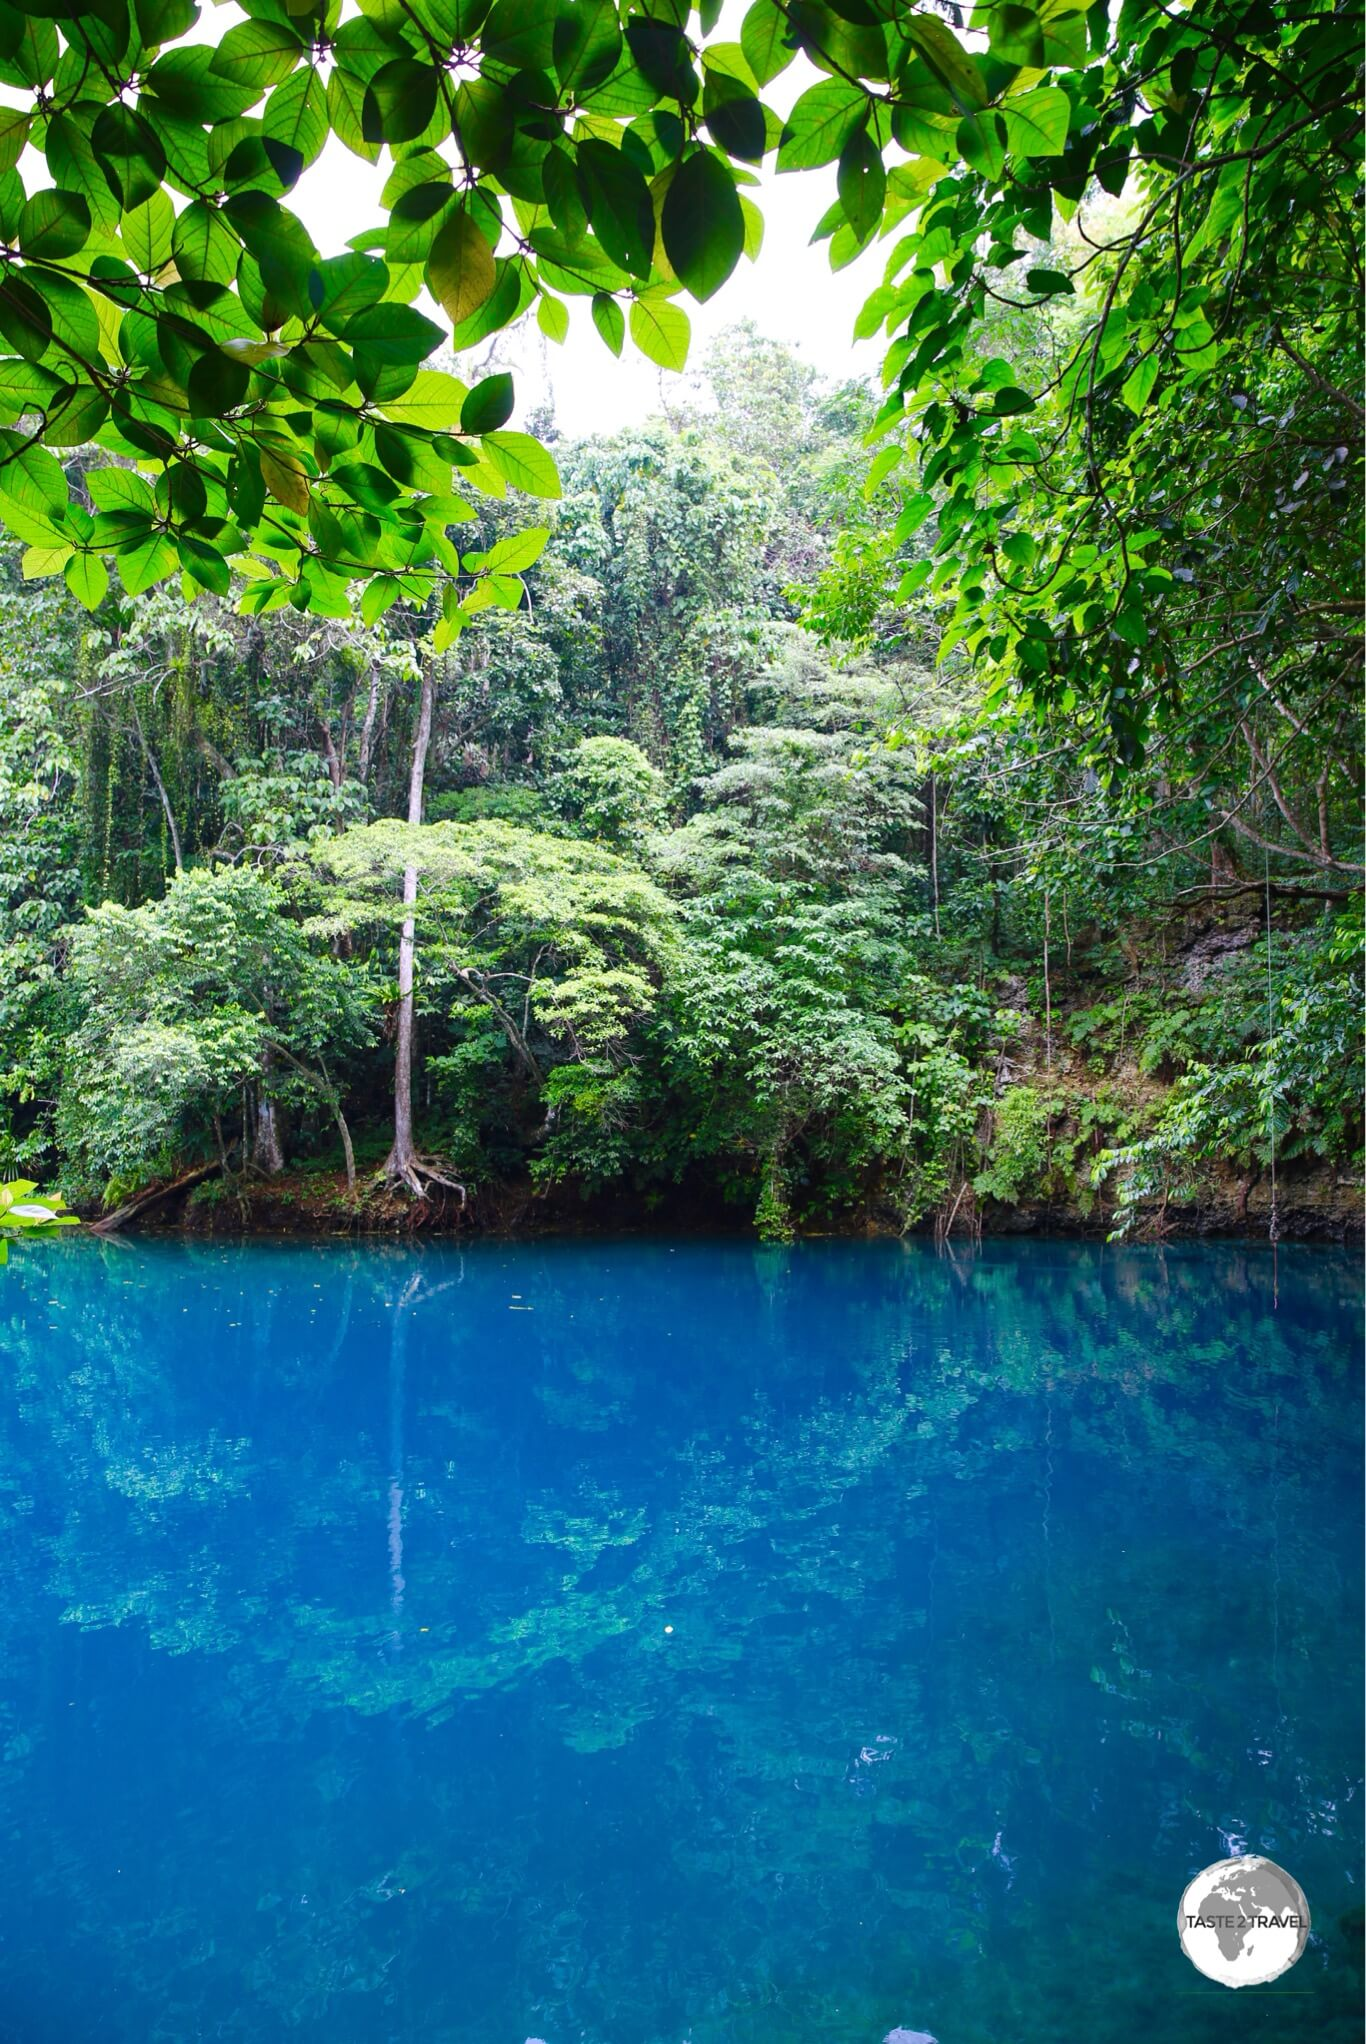 A perfect swimming spot – Riri blue hole, one of several such natural pools on Santo.